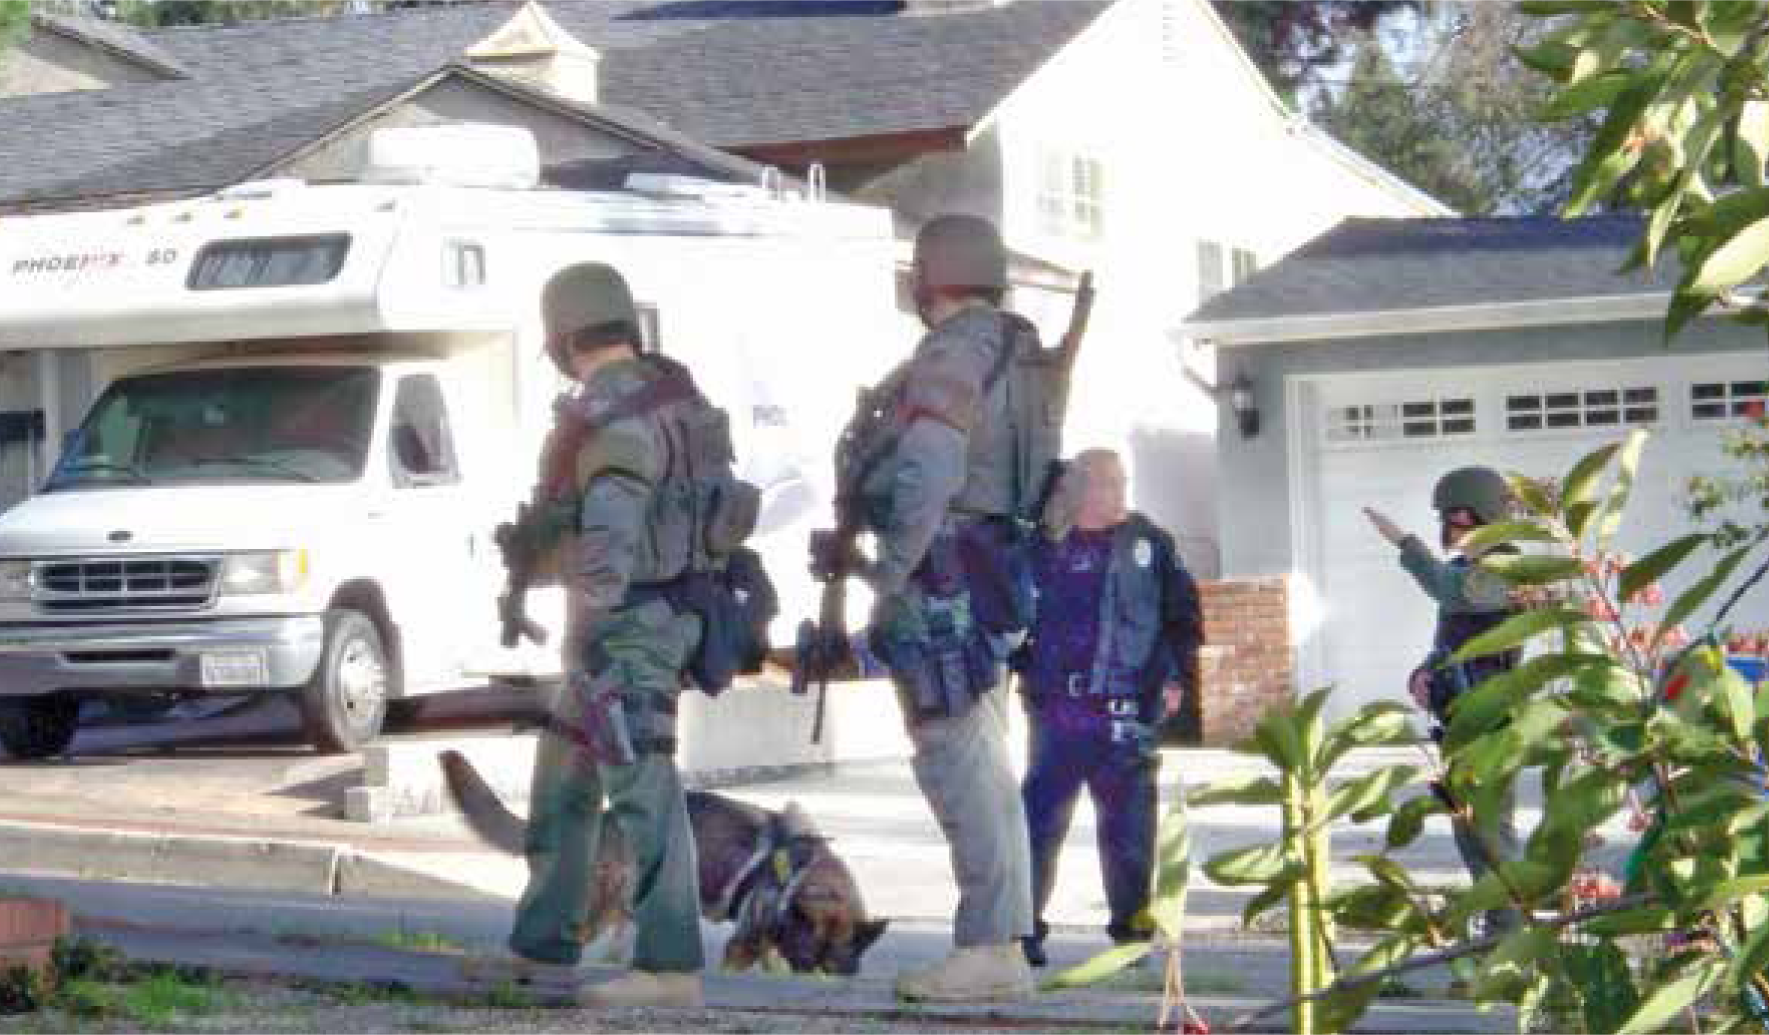 SWAT and K-9 Teams searching Cabanas St.